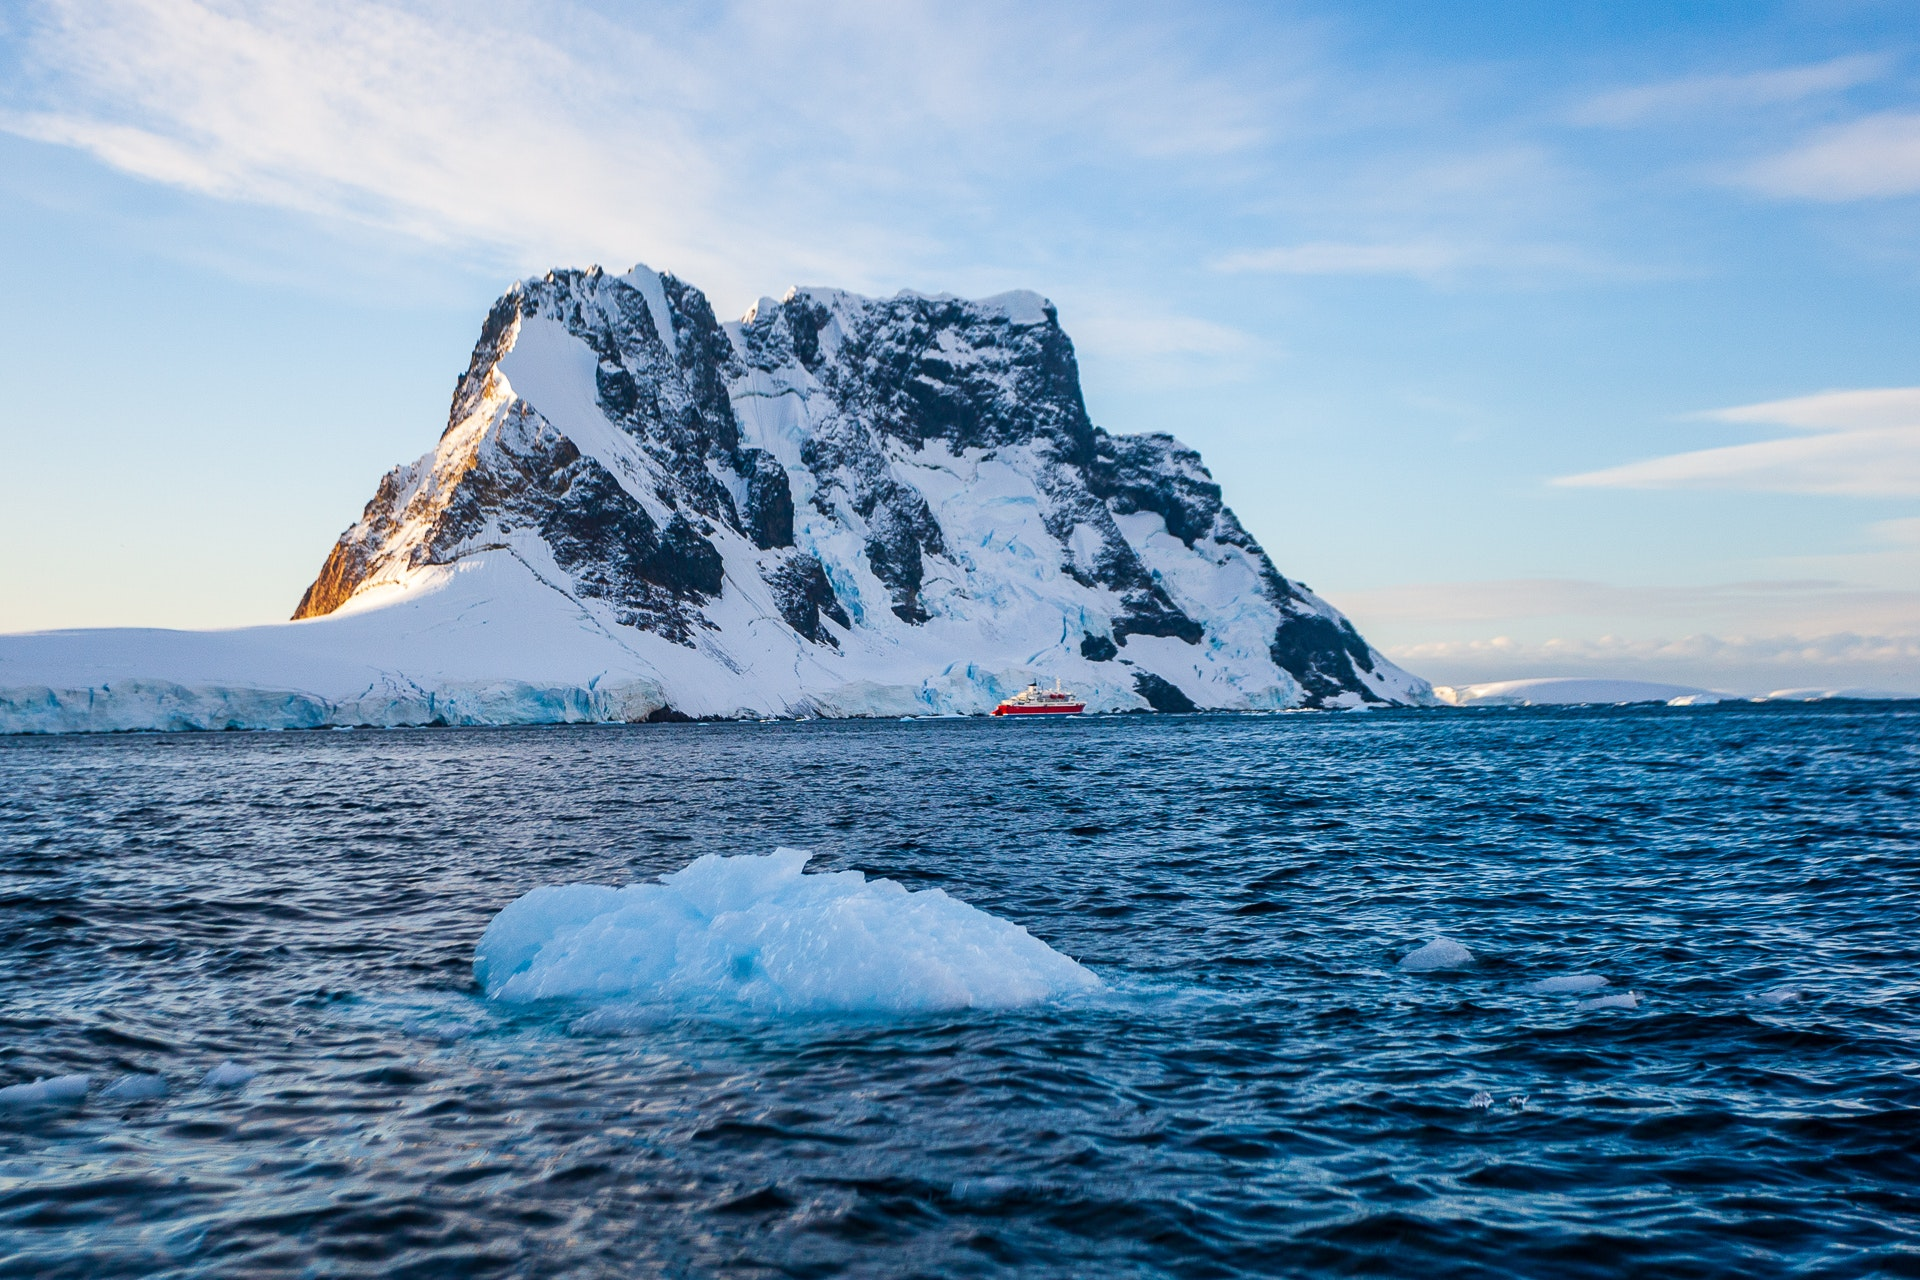 MV Expedition in the Lemaire channel